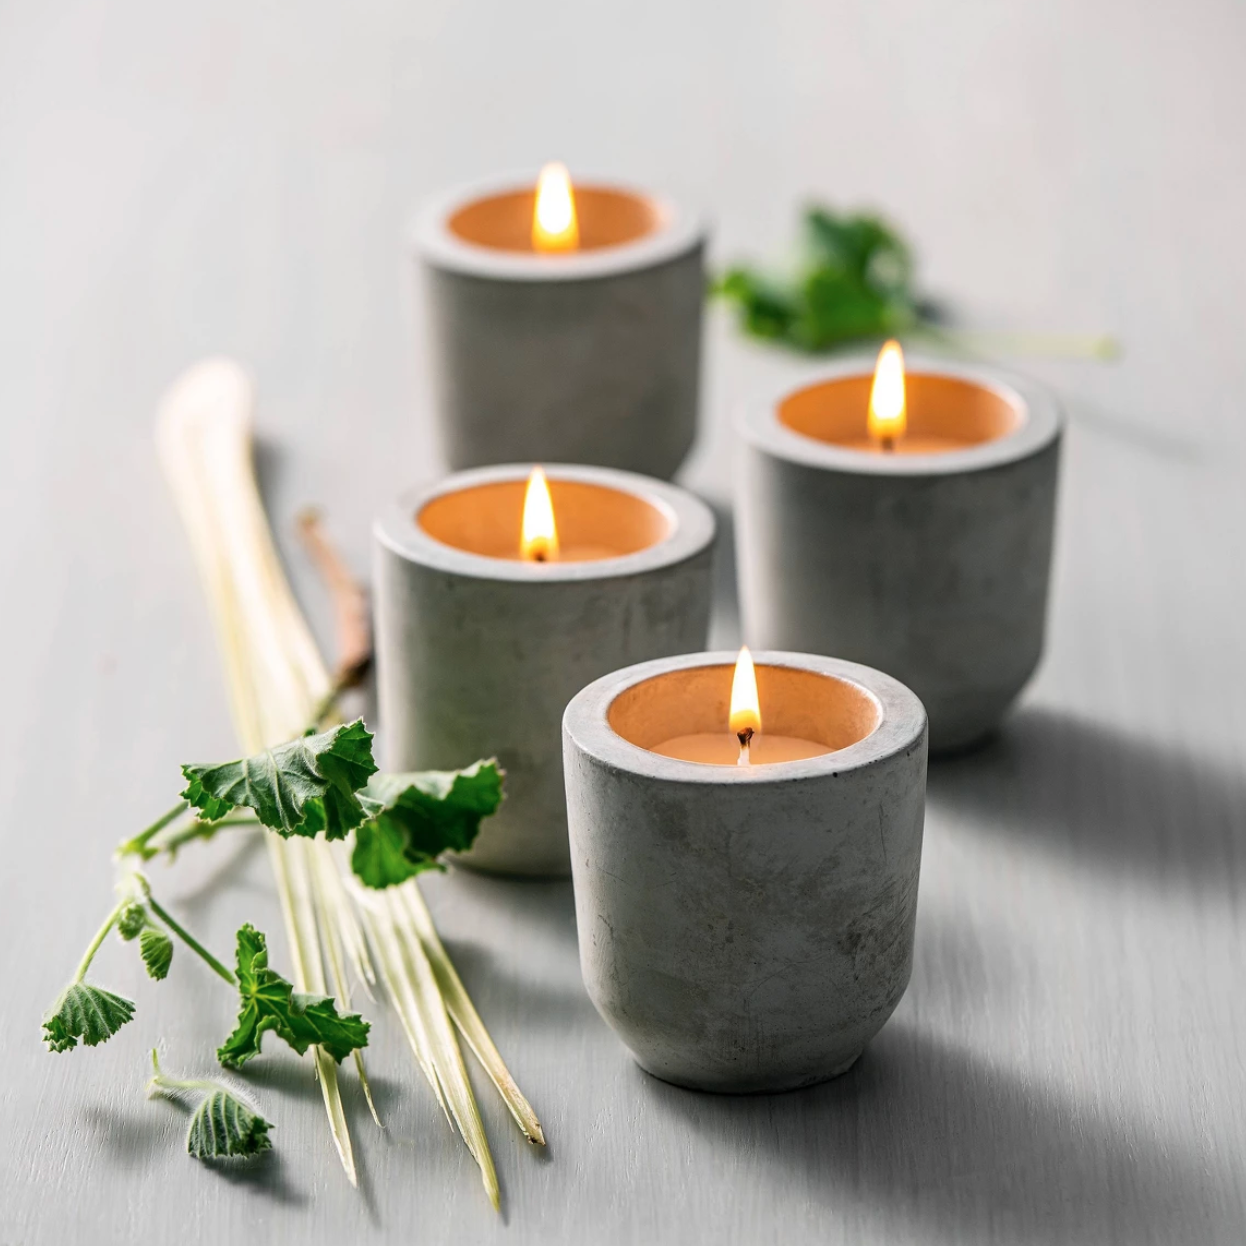 Best Citronella Candle at Target: Hearth & Hand with Magnolia 4pk Mini Citronella Cement Candles